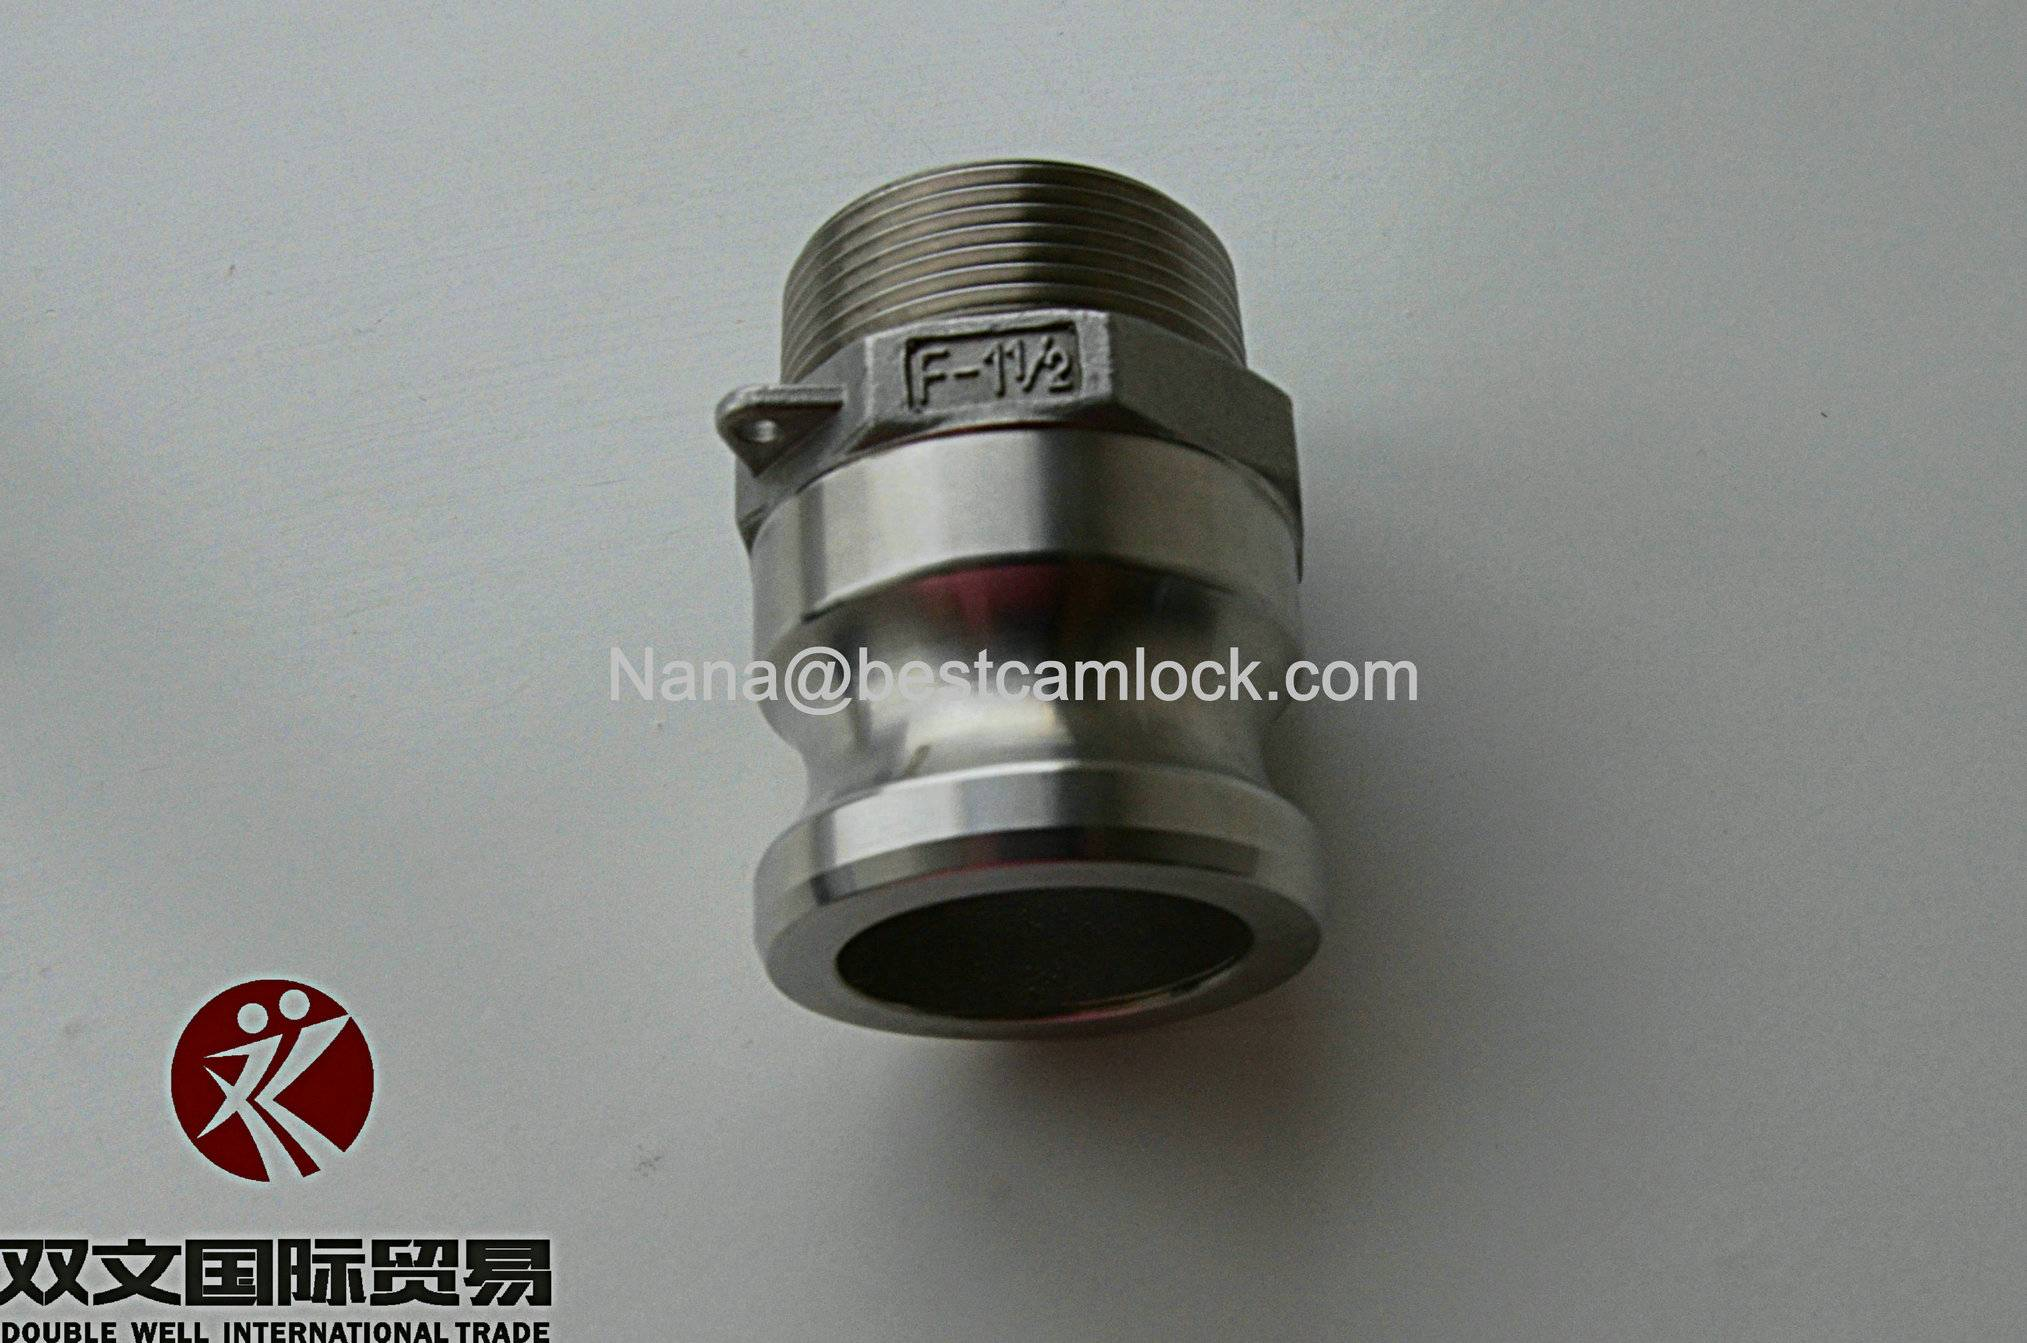 male thread stainless steel 316/304 camlock coupling adapter F